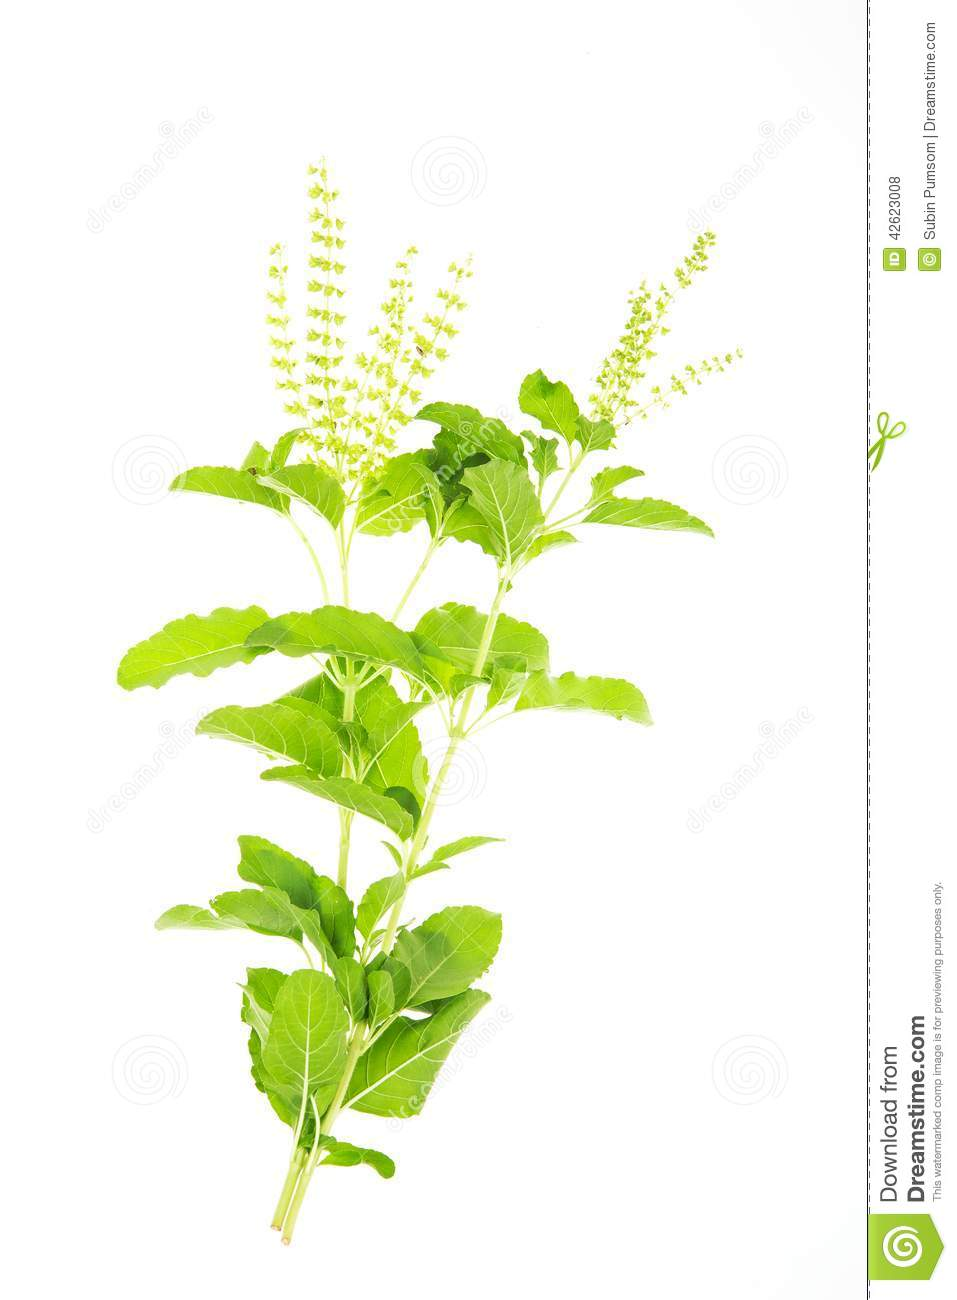 Ocimum Sanctum Stock Photo.